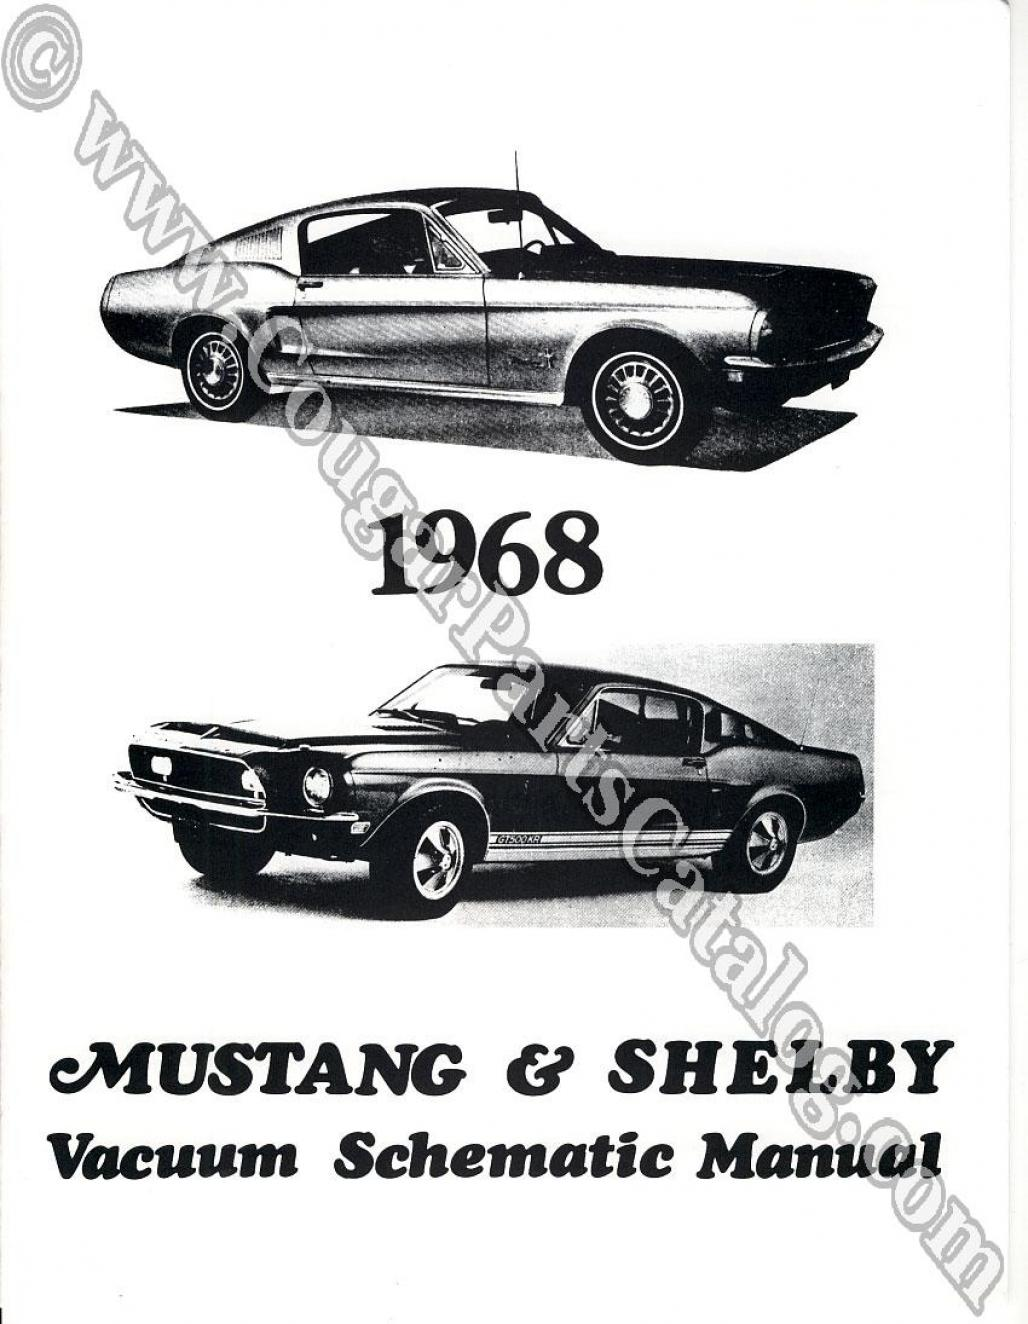 hight resolution of manual vacuum schematic w cougar headlight schematic repro 1968 mercury cougar 1968 ford mustang shelby 1968 mercury cougar 1968 ford